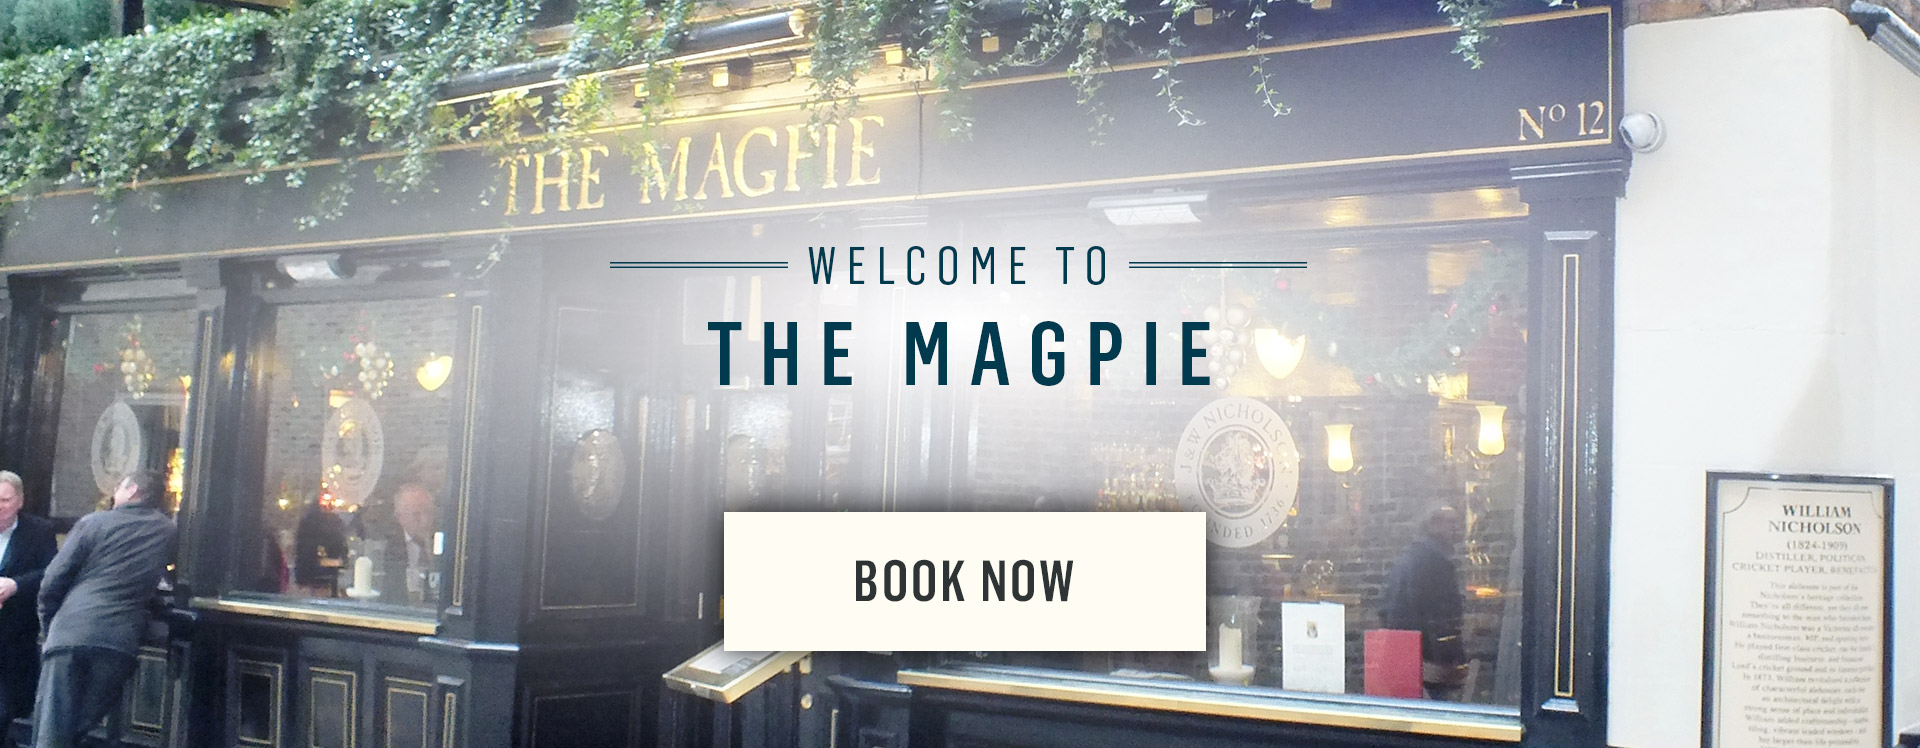 Welcome to The Magpie - Book Now